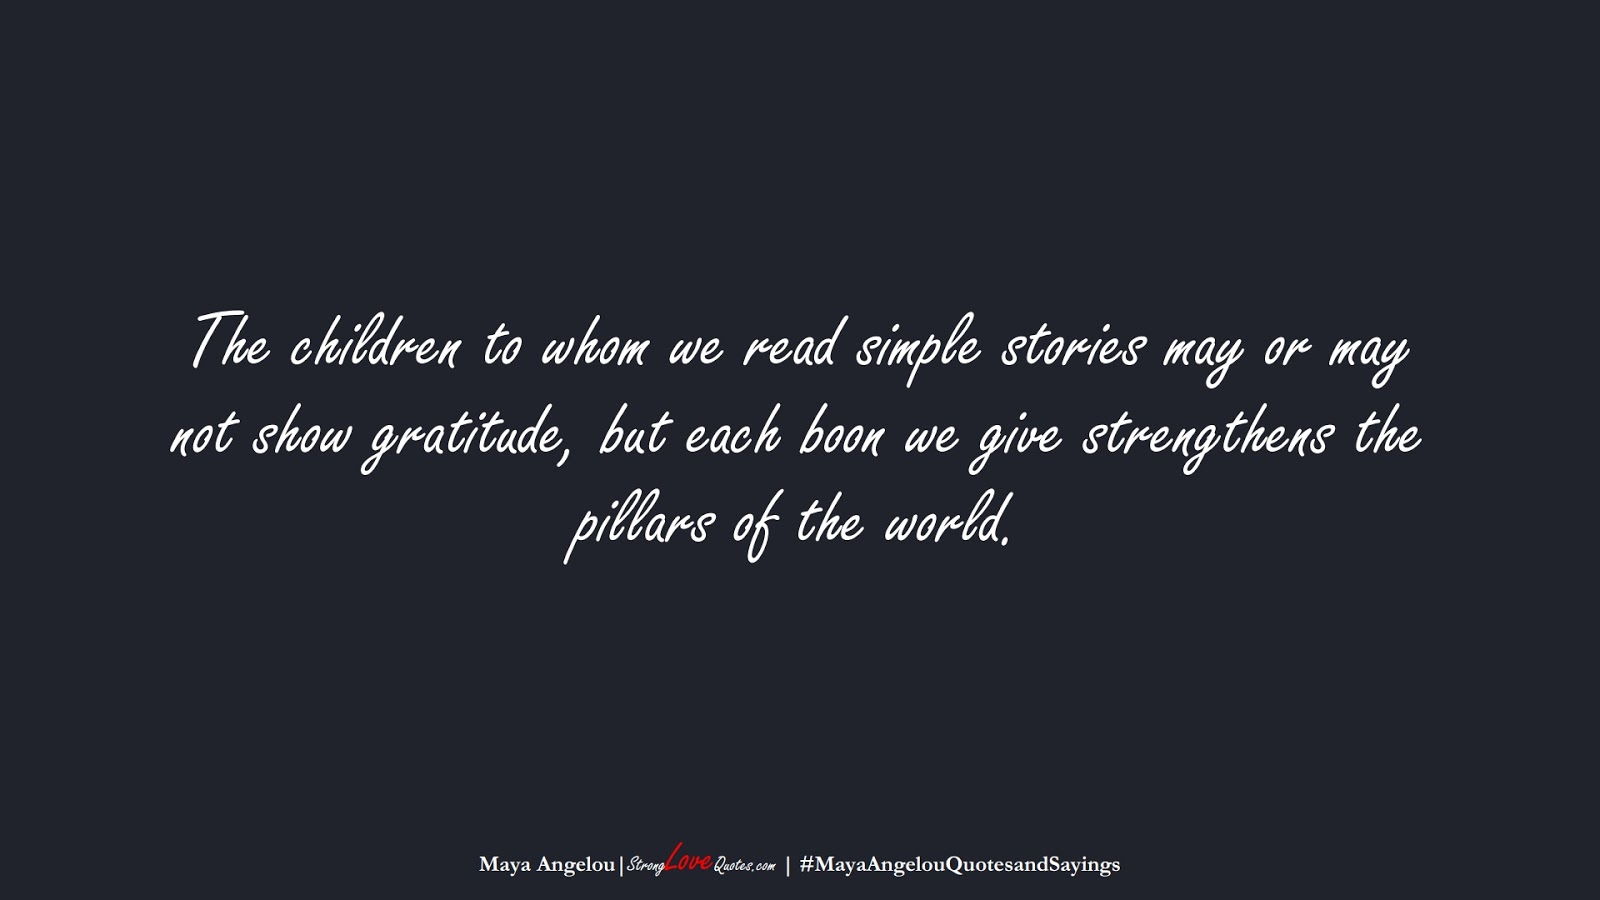 The children to whom we read simple stories may or may not show gratitude, but each boon we give strengthens the pillars of the world. (Maya Angelou);  #MayaAngelouQuotesandSayings